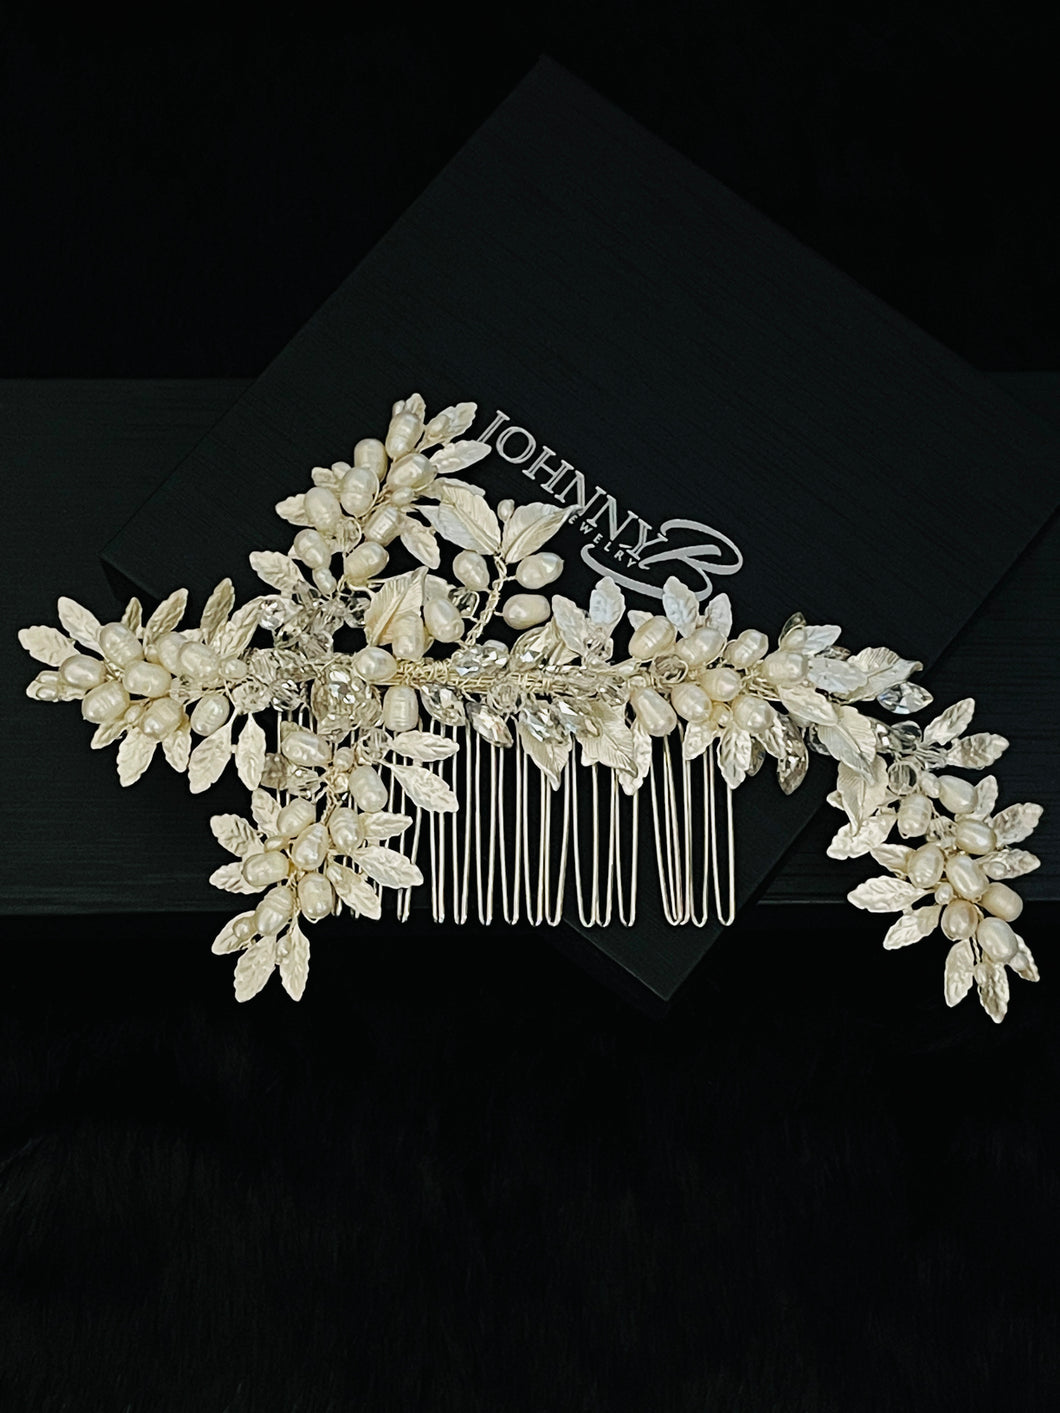 DOMINICA - Metal Silver Leaves With Freshwater Pearl Berries Hair Comb In Silver